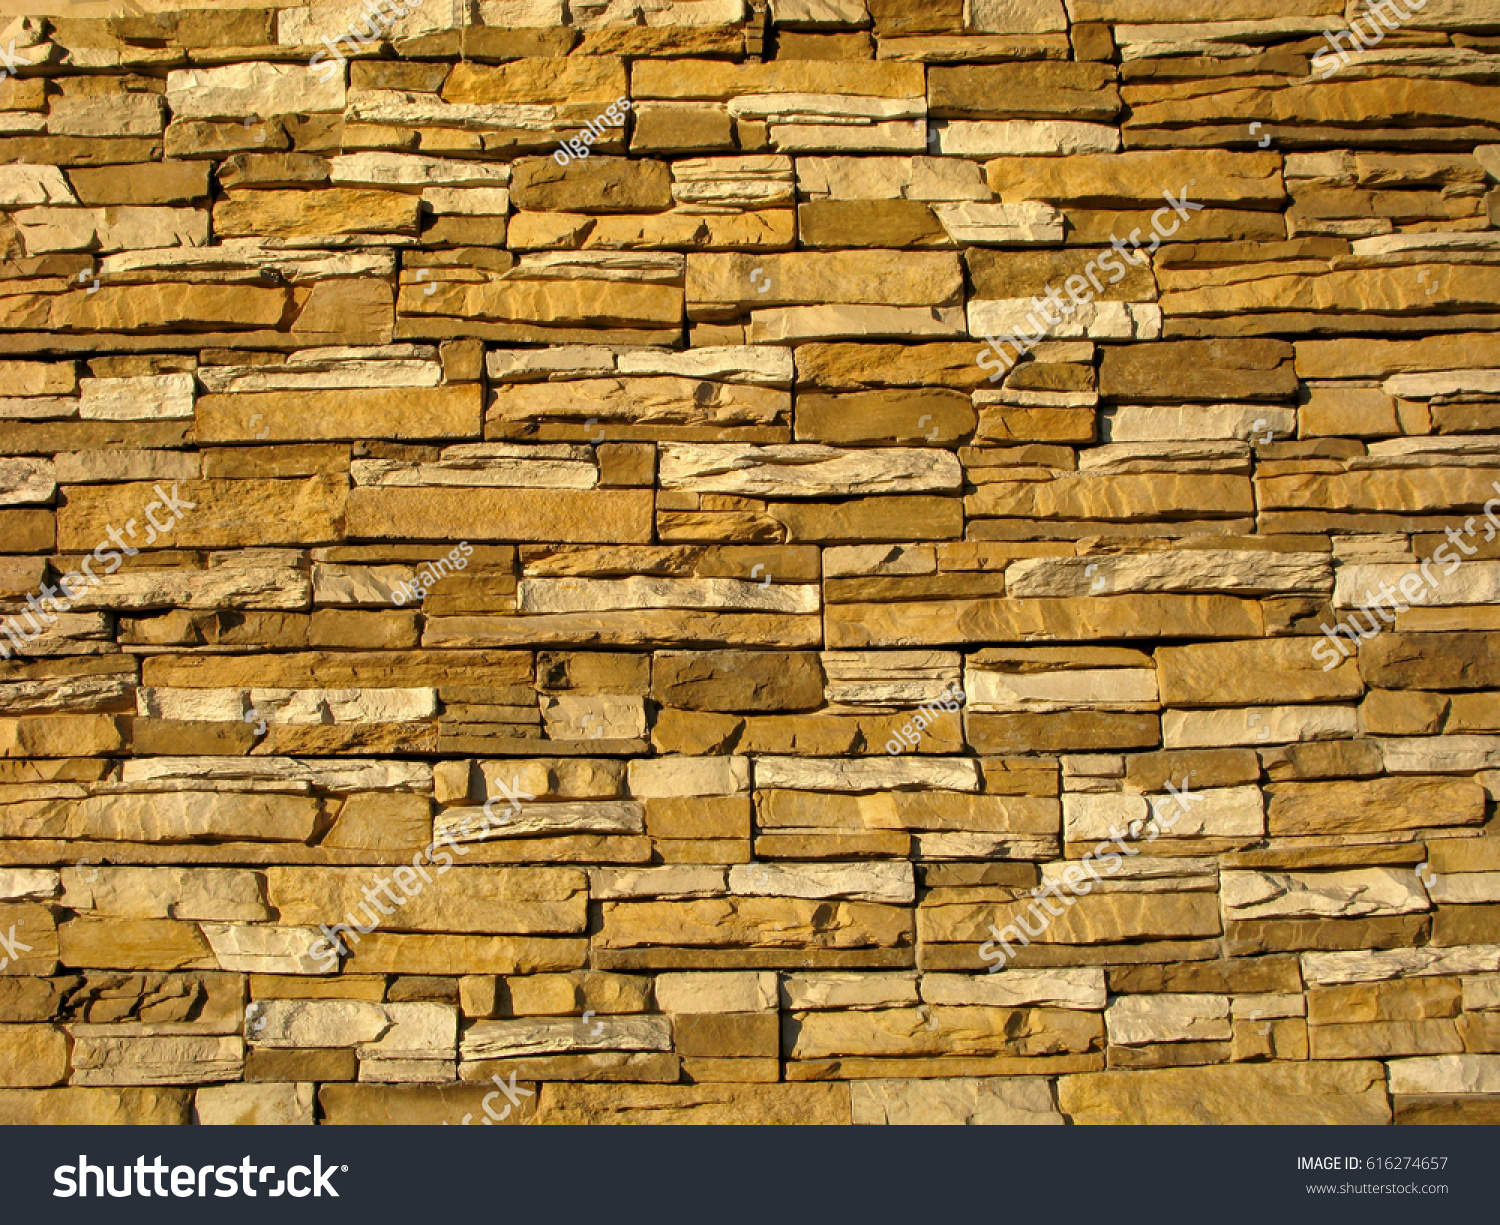 Wall Made Artificial Stone Modern Design Stock Photo & Image ...